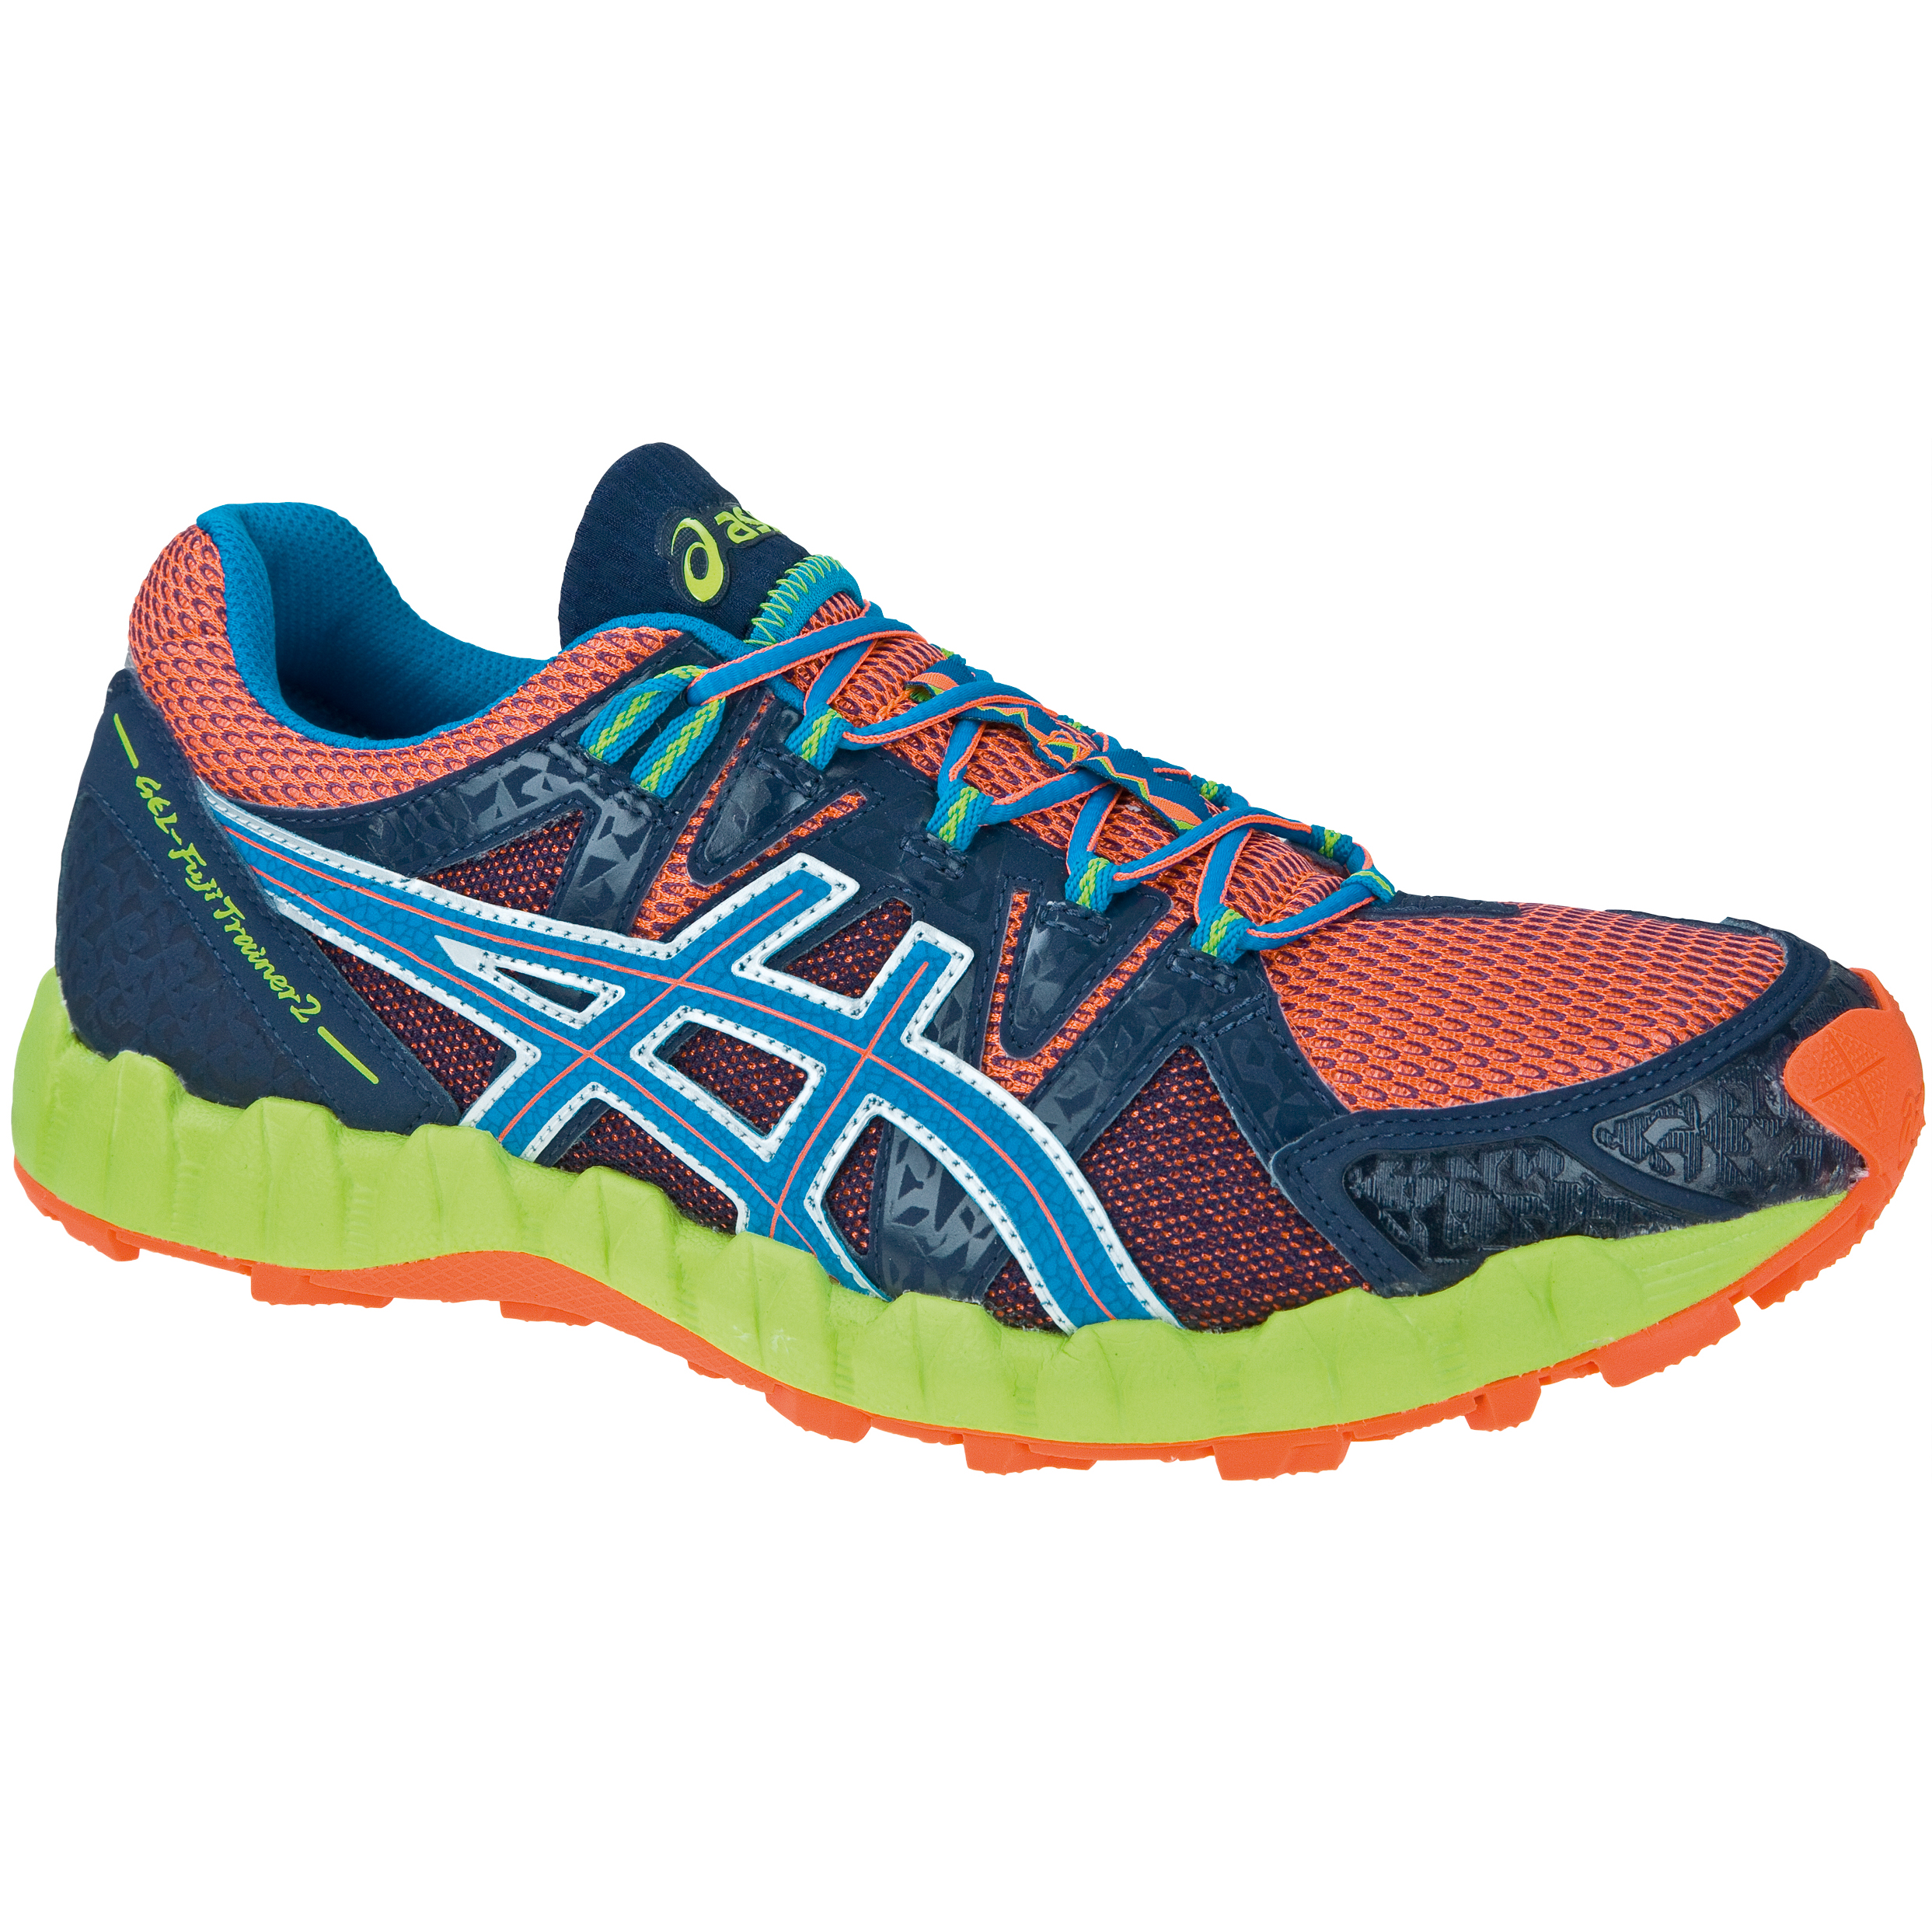 Fuji Asics Gel Shoes Trainer Internal 2 France Wiggle qaEwdqP